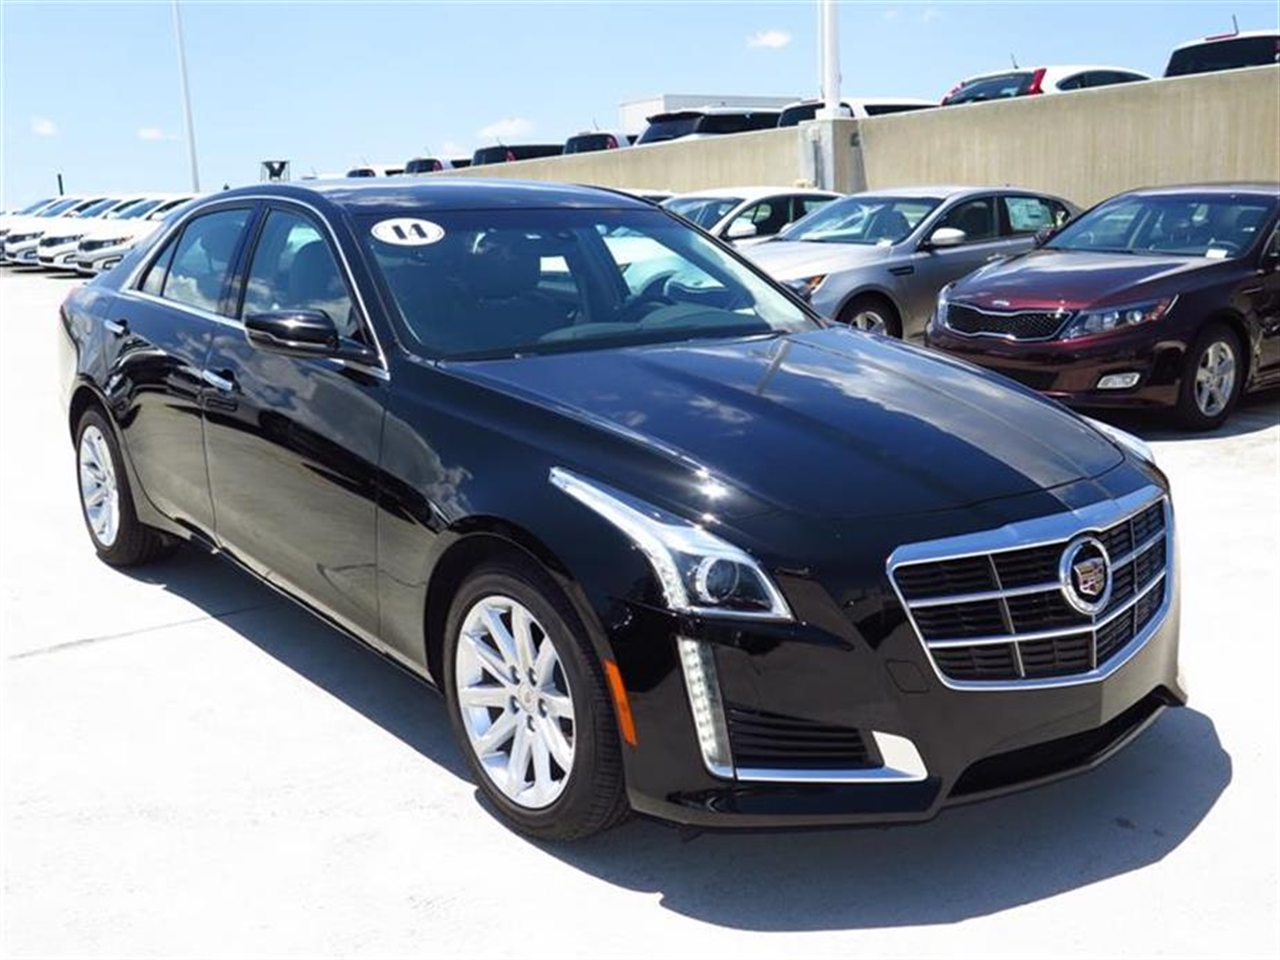 2014 CADILLAC CTS 4dr Sdn 20L Turbo RWD 6477 miles Adaptive Remote Start Air filtration system